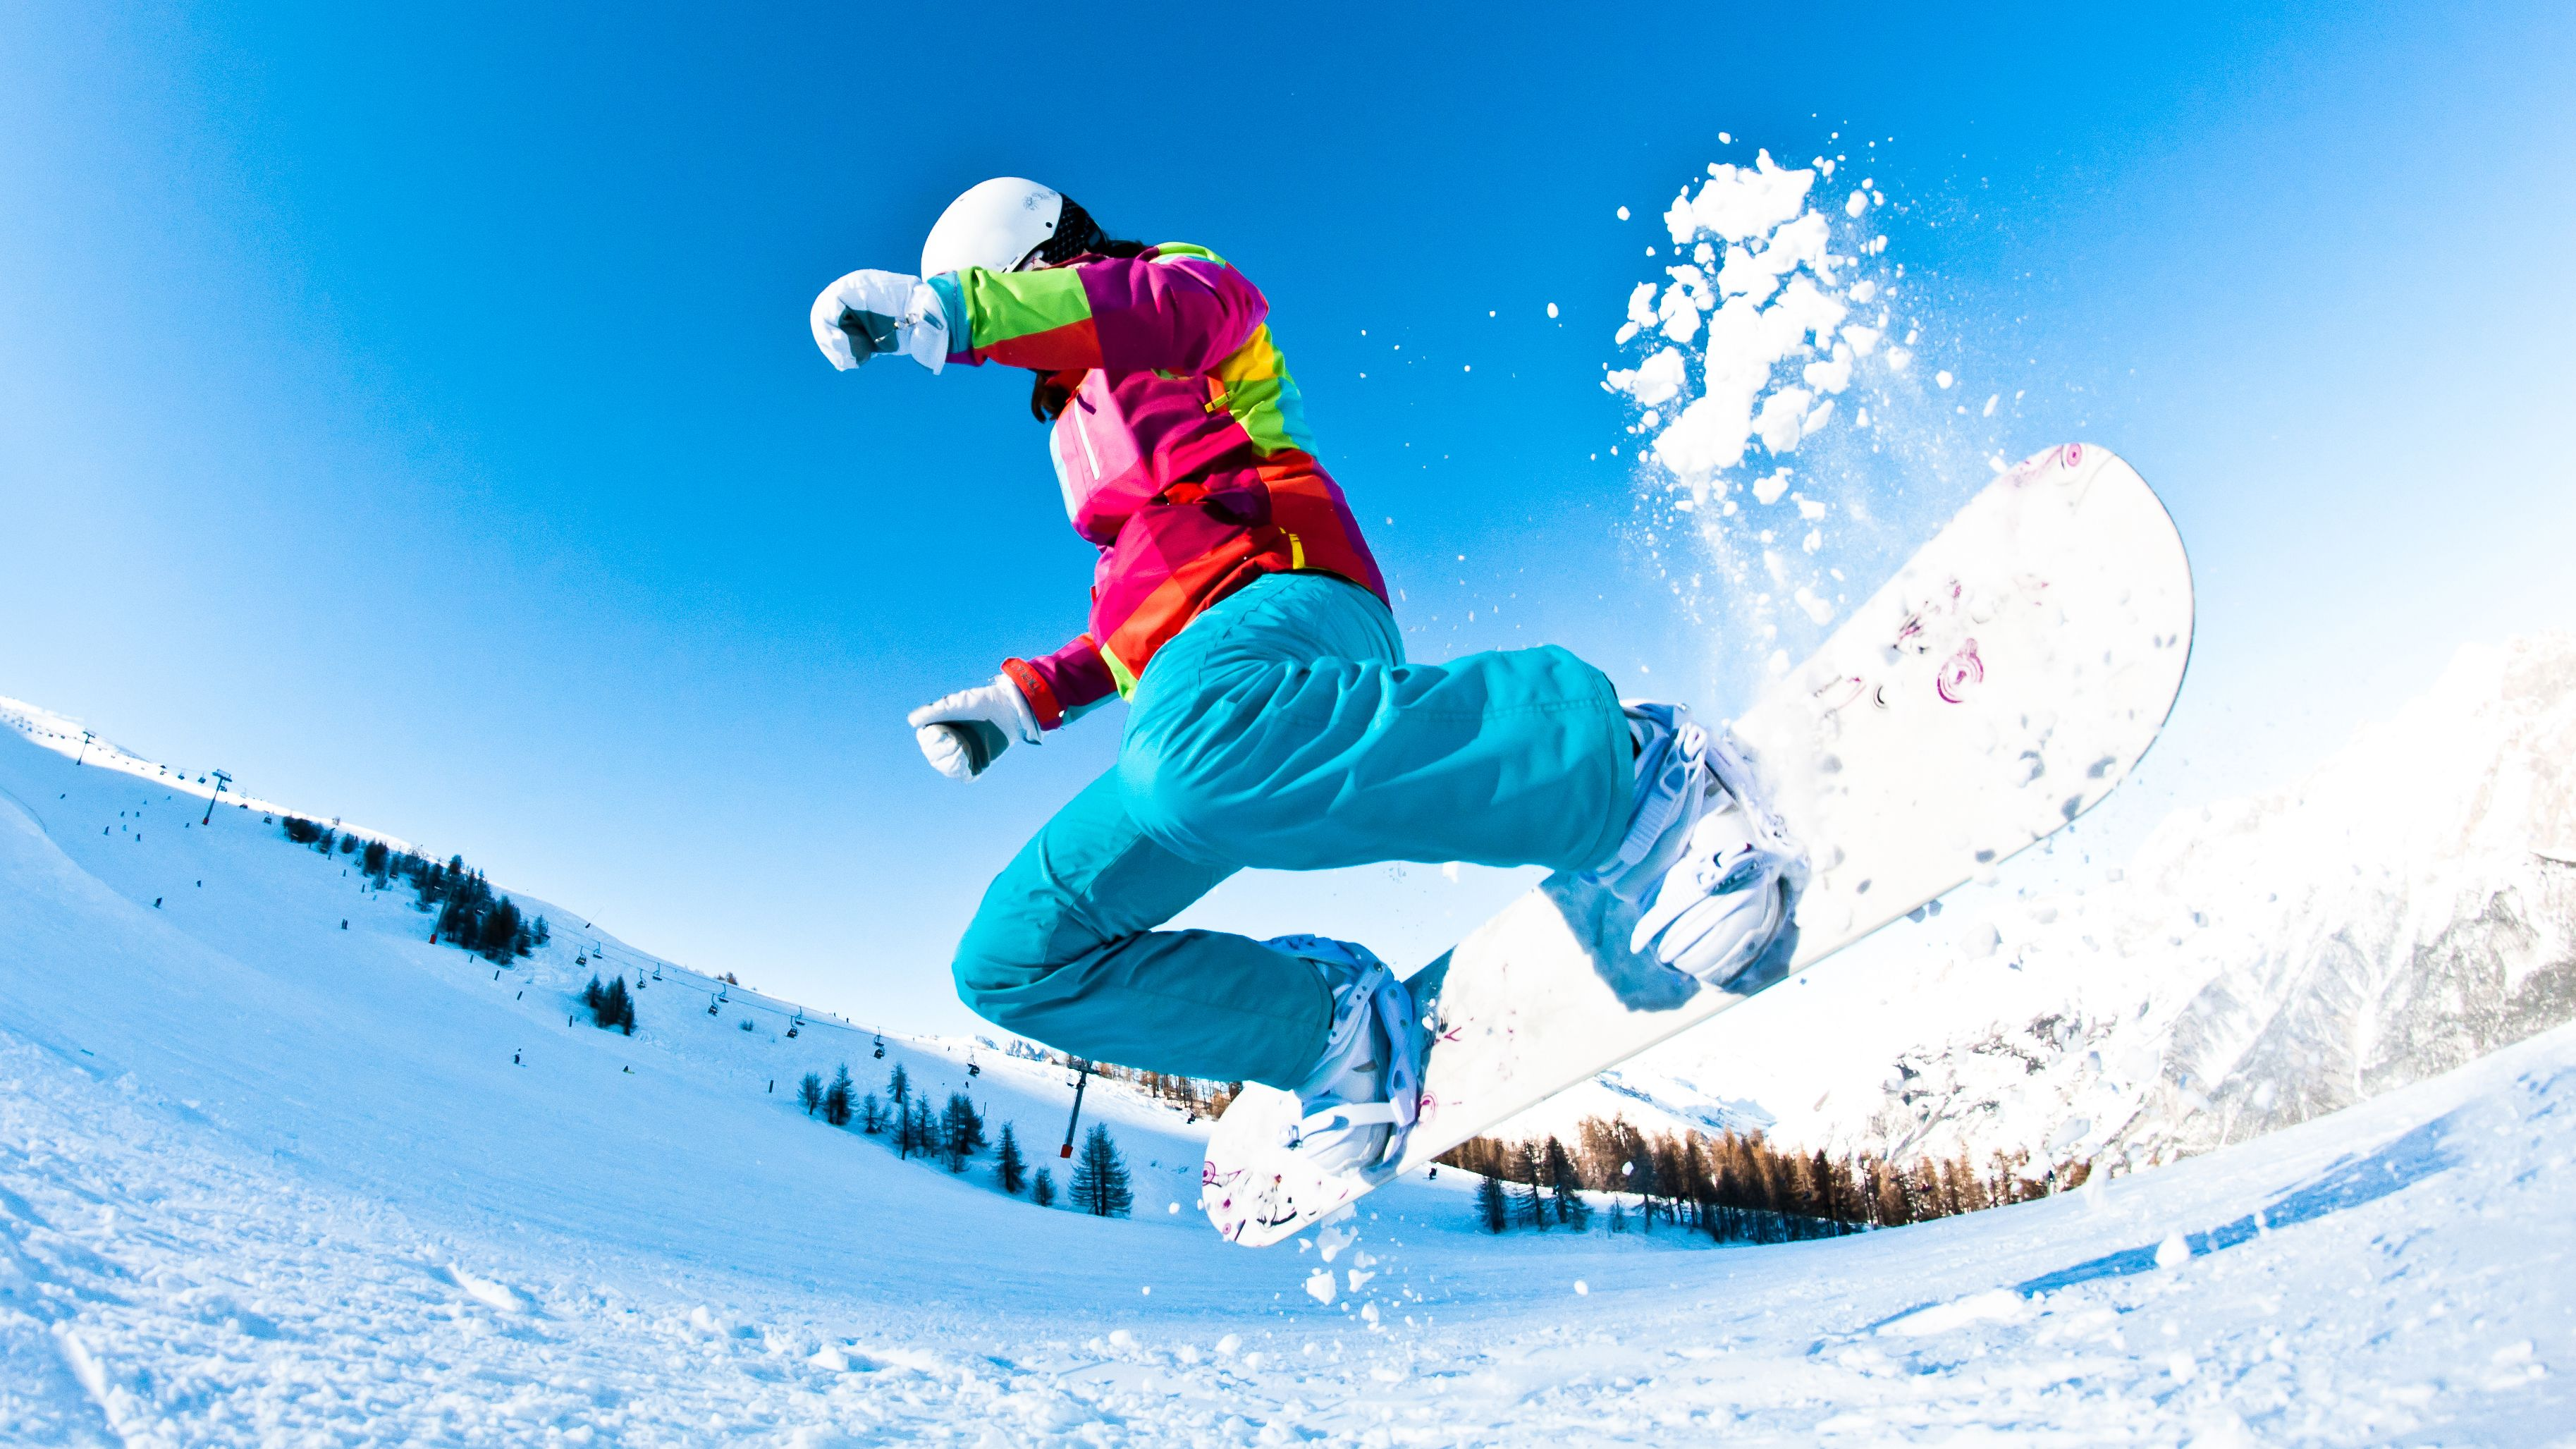 Snowboarder on a mountain